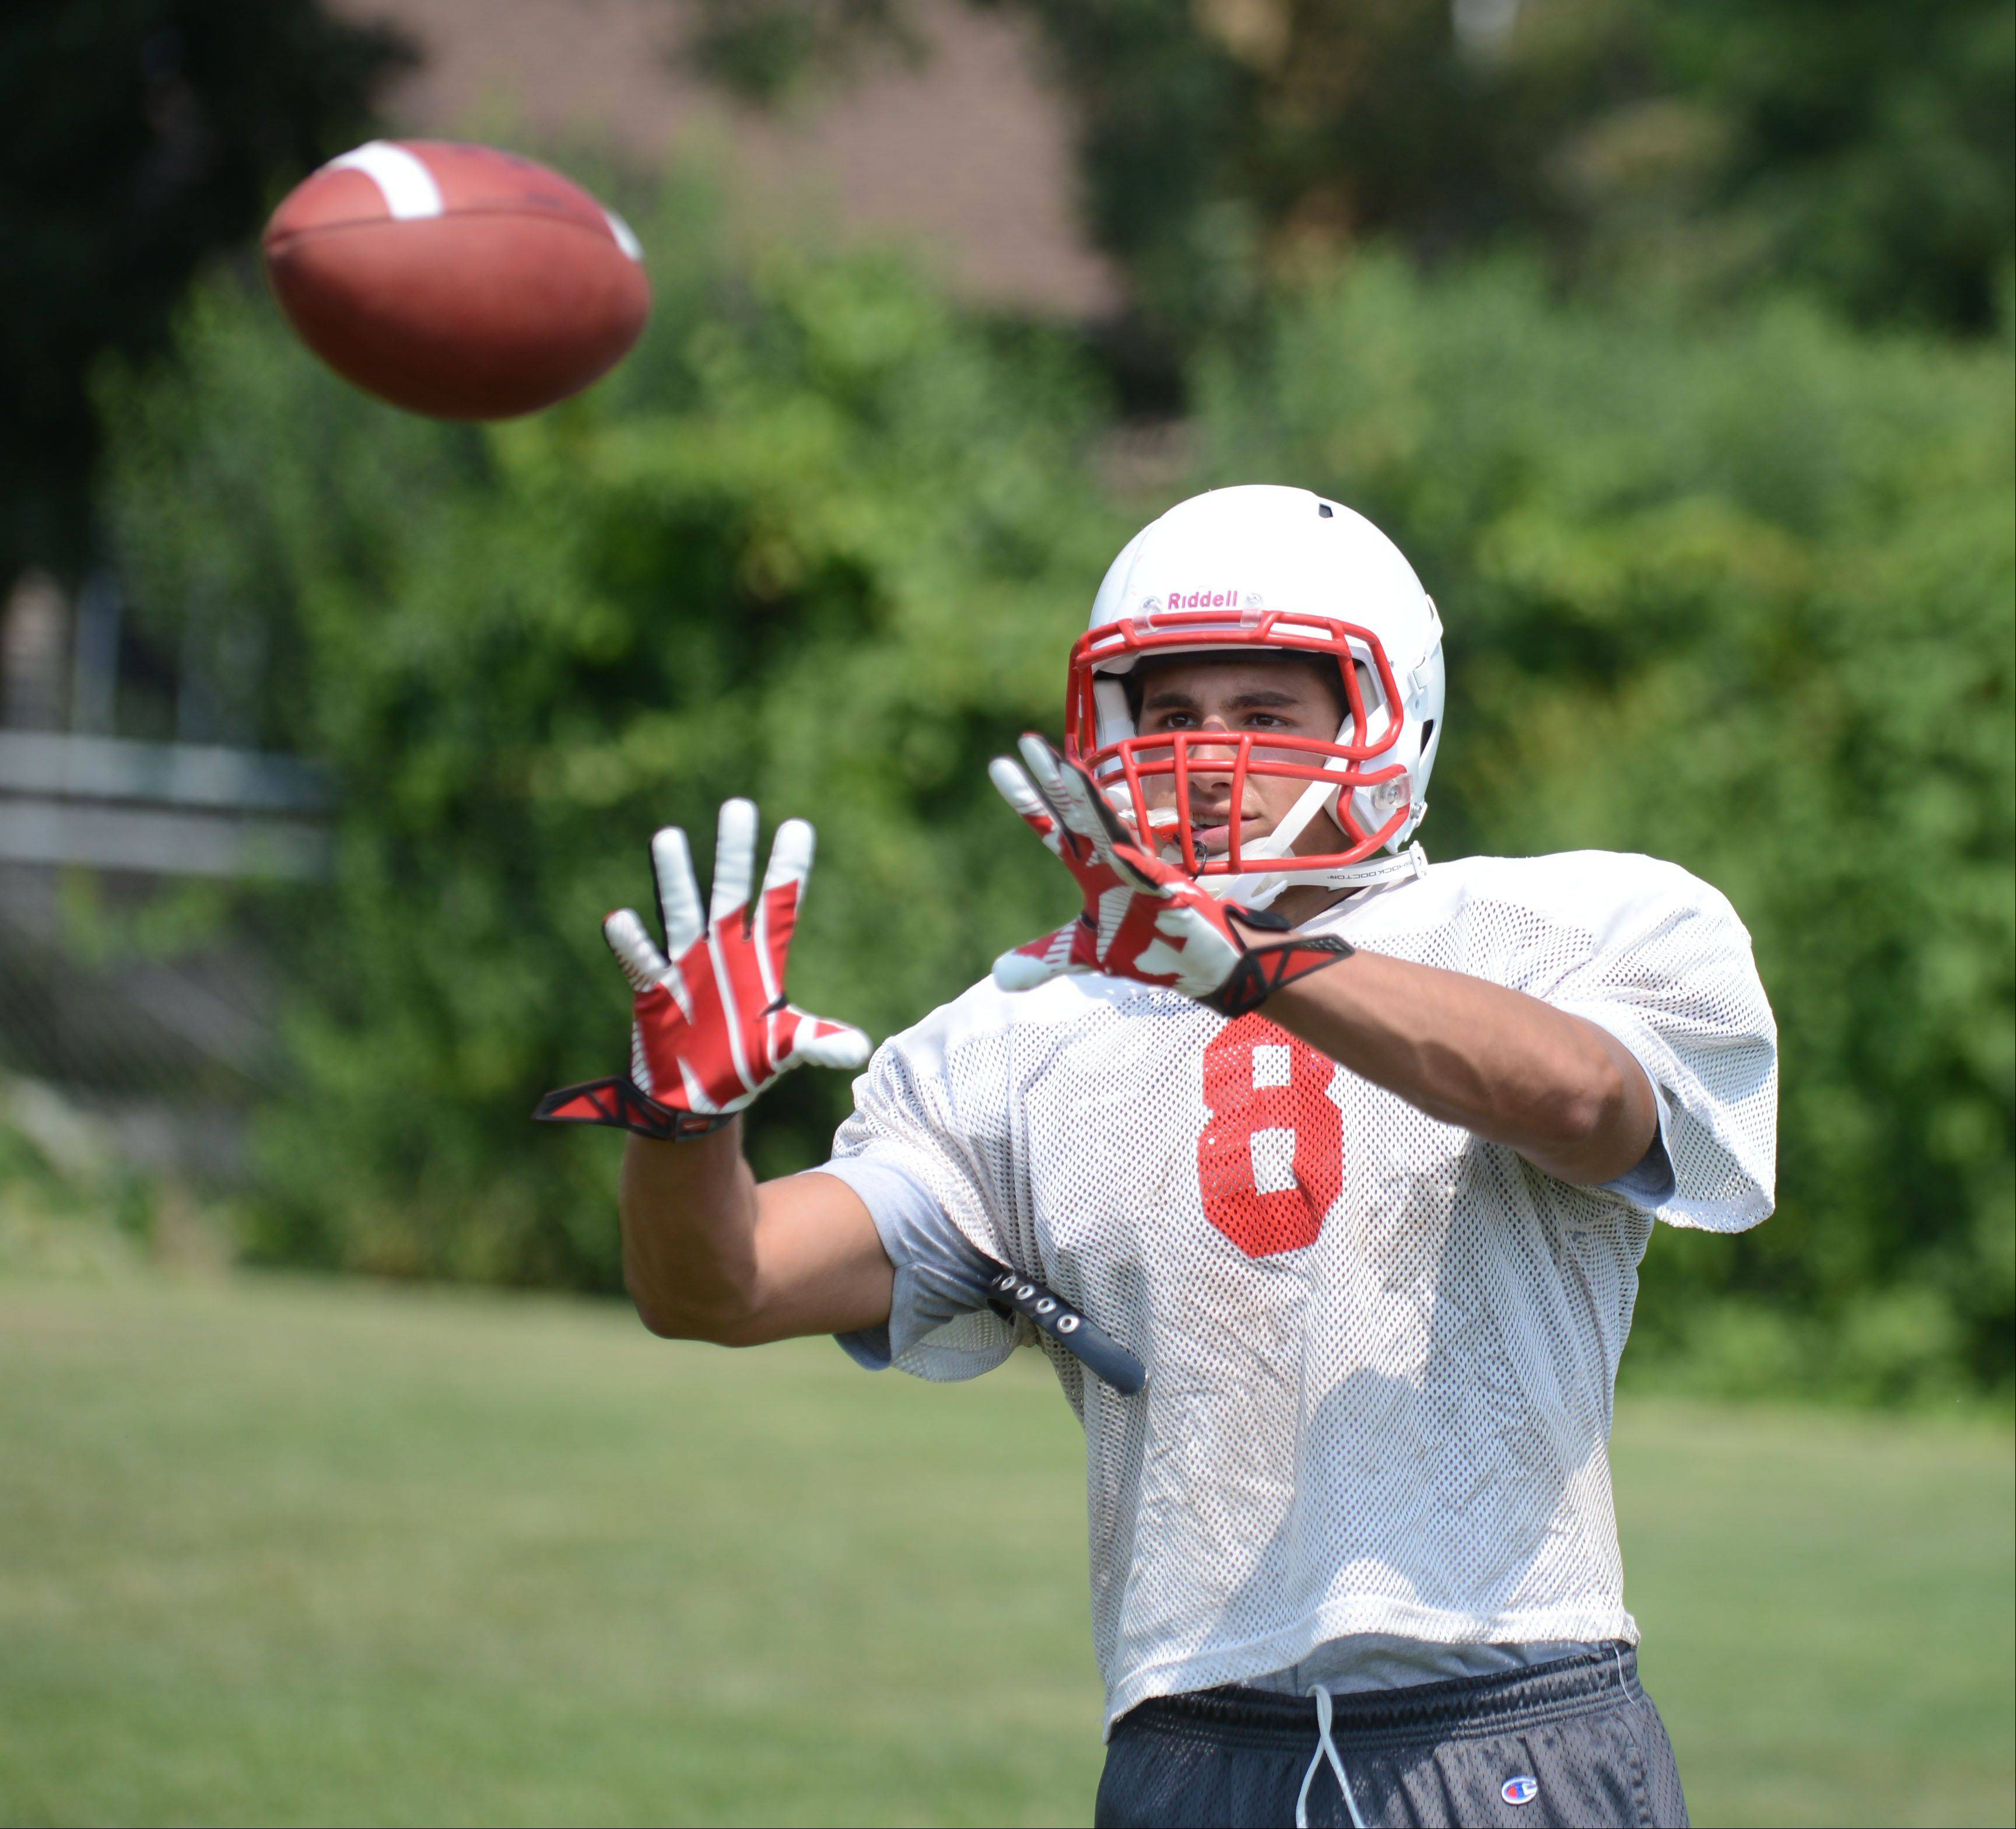 Nick Surges lines up a catch during Saturdays practice at Benet in Lisle.